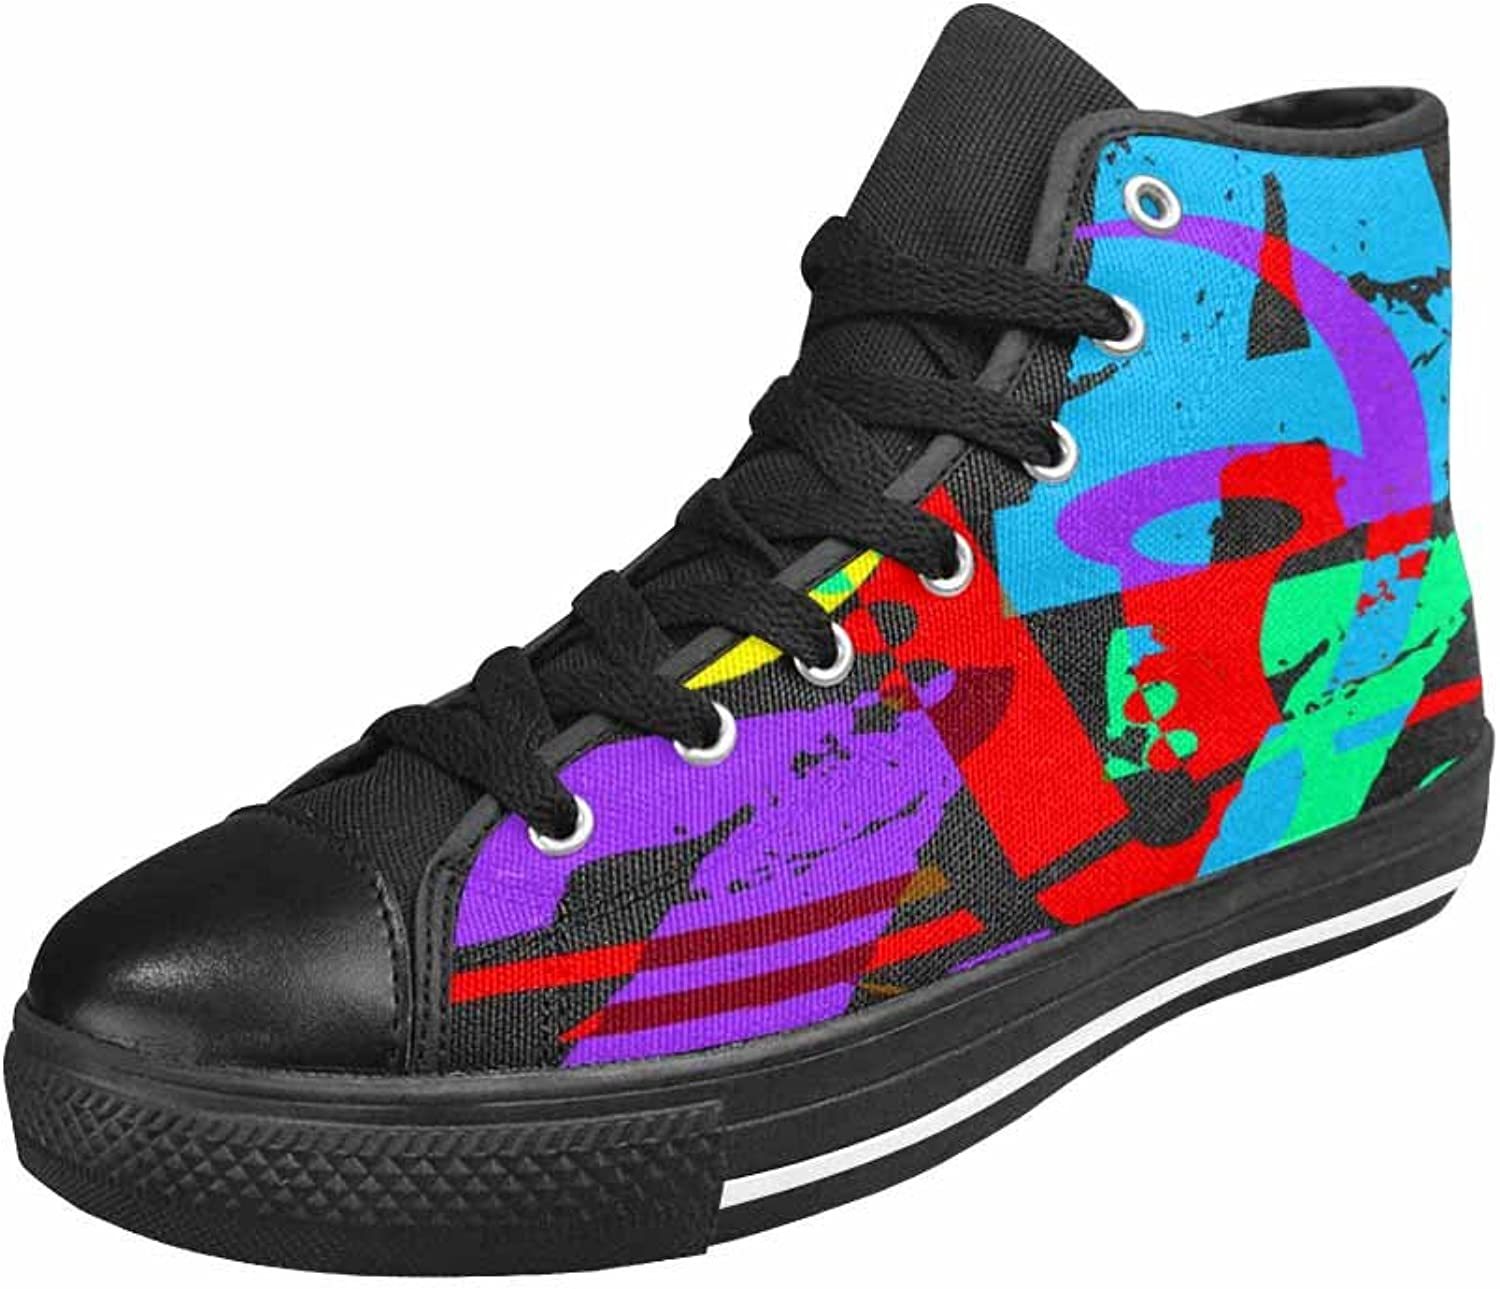 Qchengshix Women's Low Top Classic Canvas Fashion Sneaker Basketball Tennis Athletic shoesCool and Hip Jazz